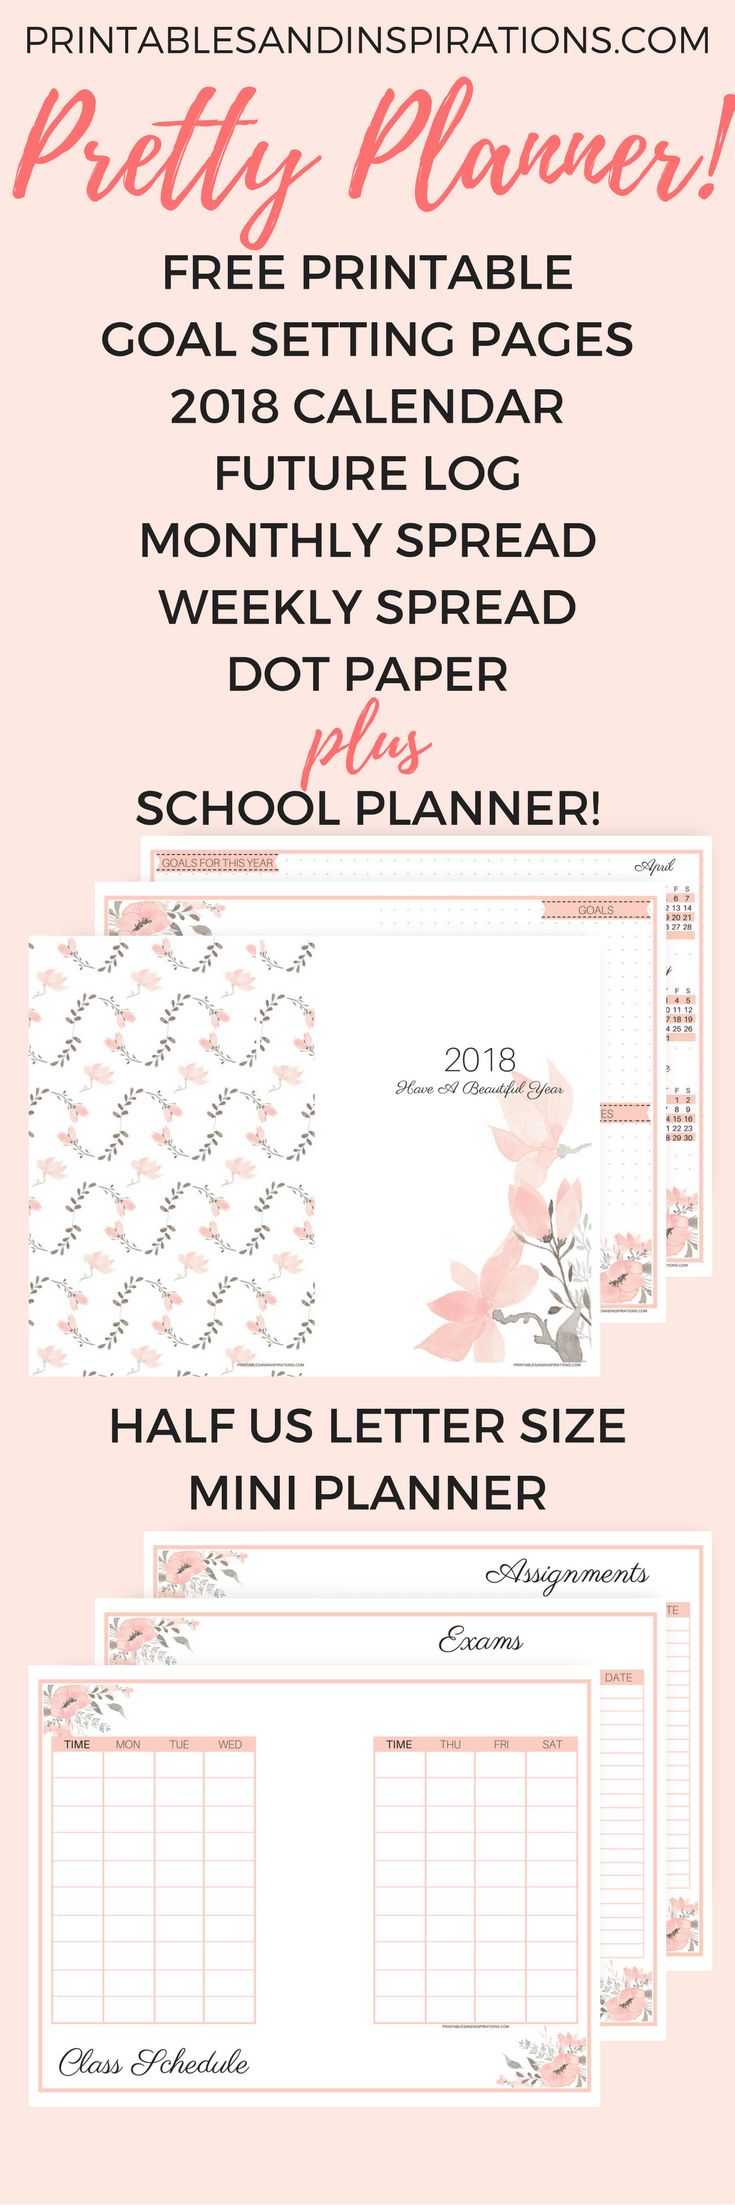 free printable pretty 2018 planner and 2018 calendar, monthly planner, weekly planner spread, future log, school planner, bullet journal, bujo, mini planner pages, floral calendar